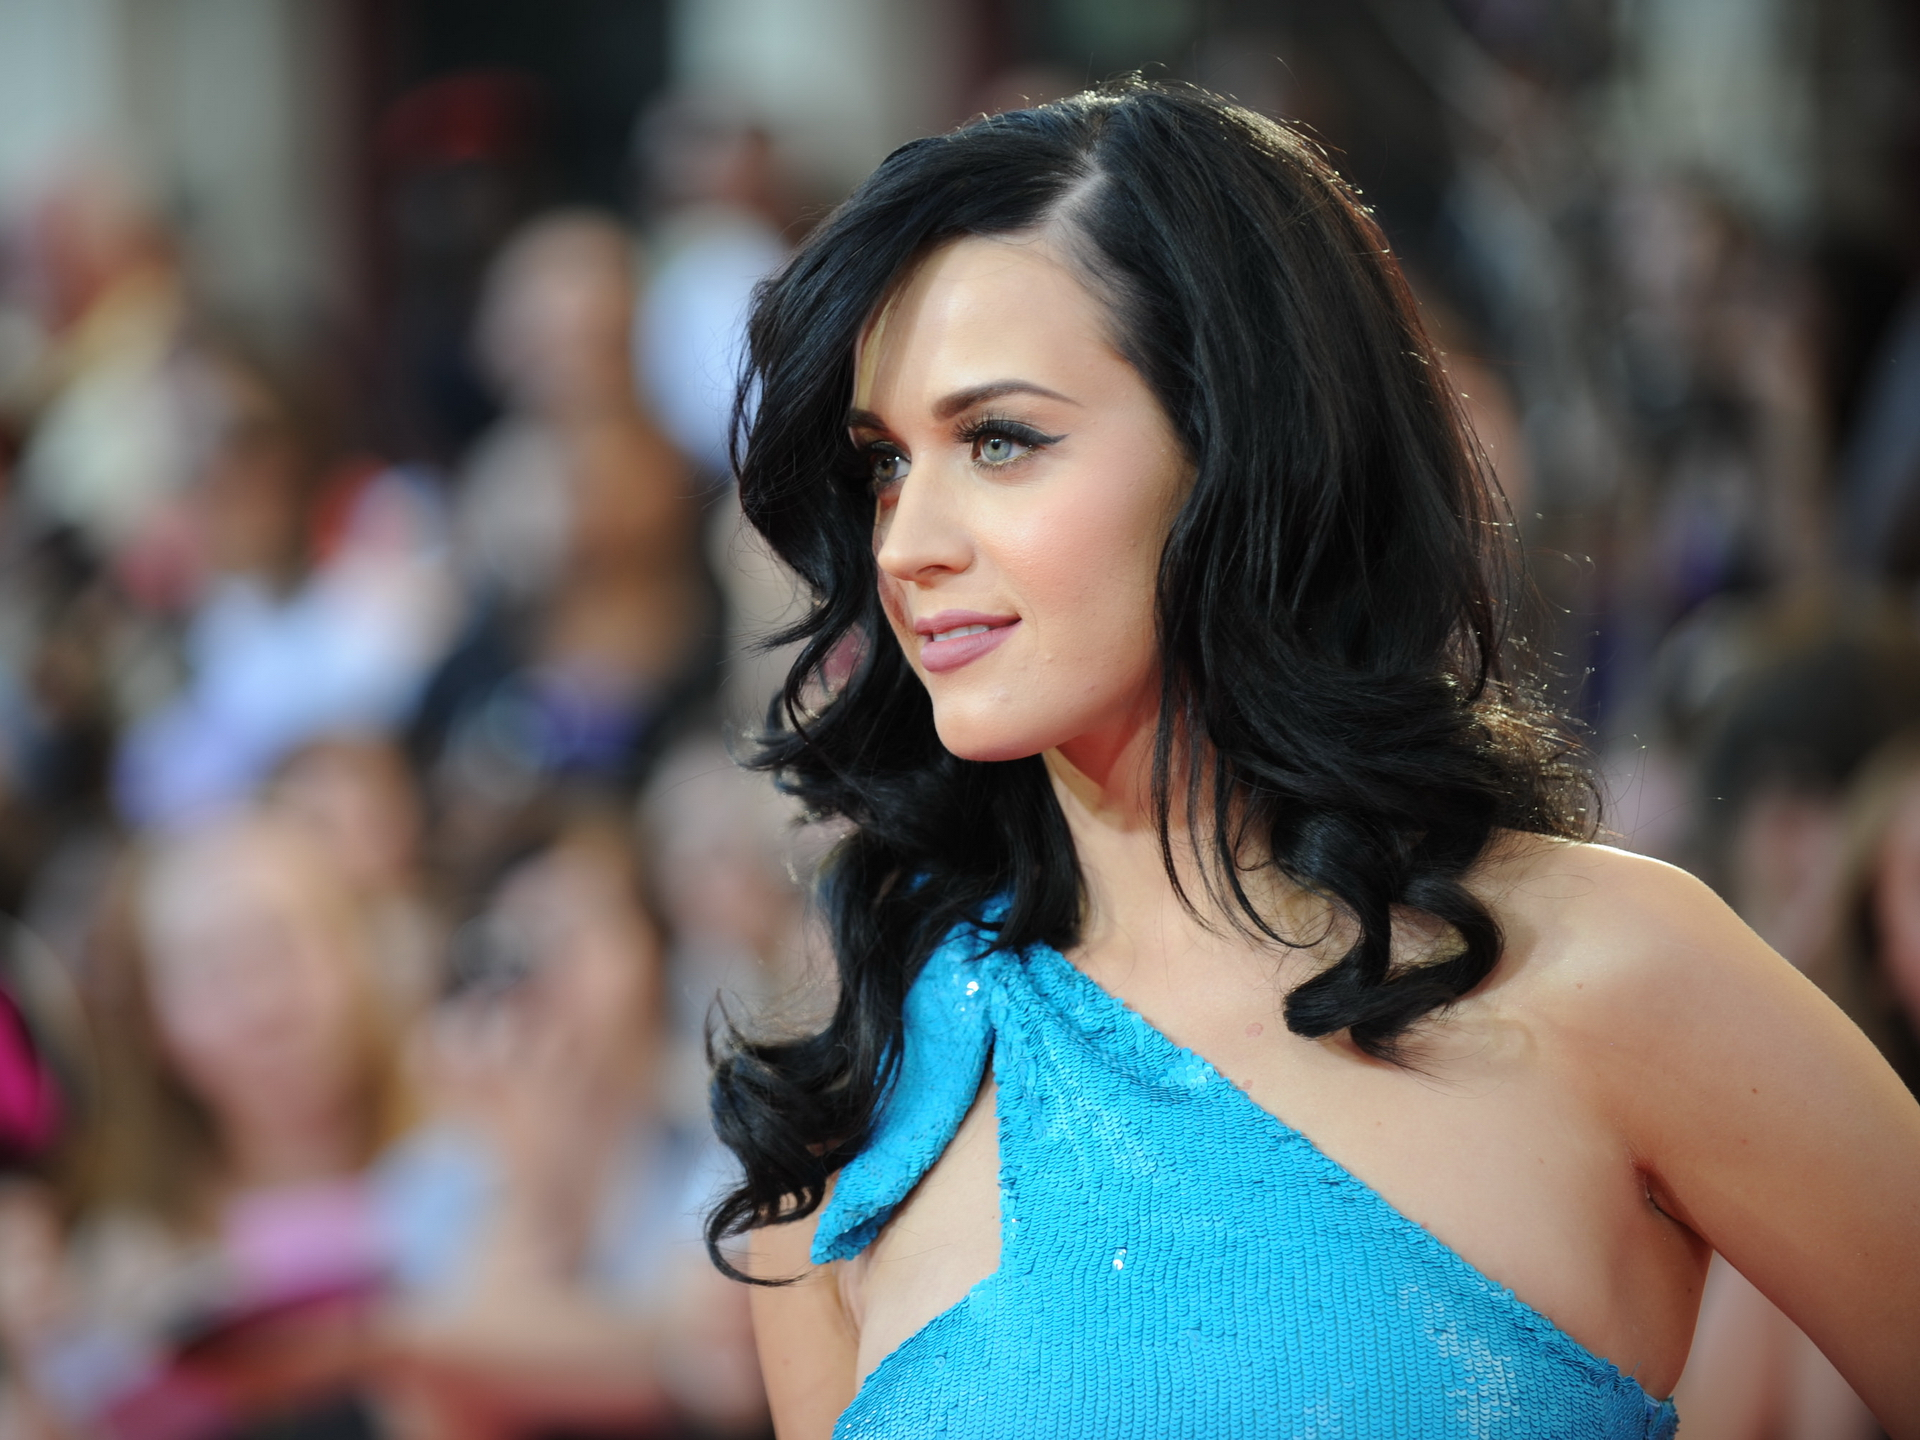 katy perry celebrity wallpaper 51745